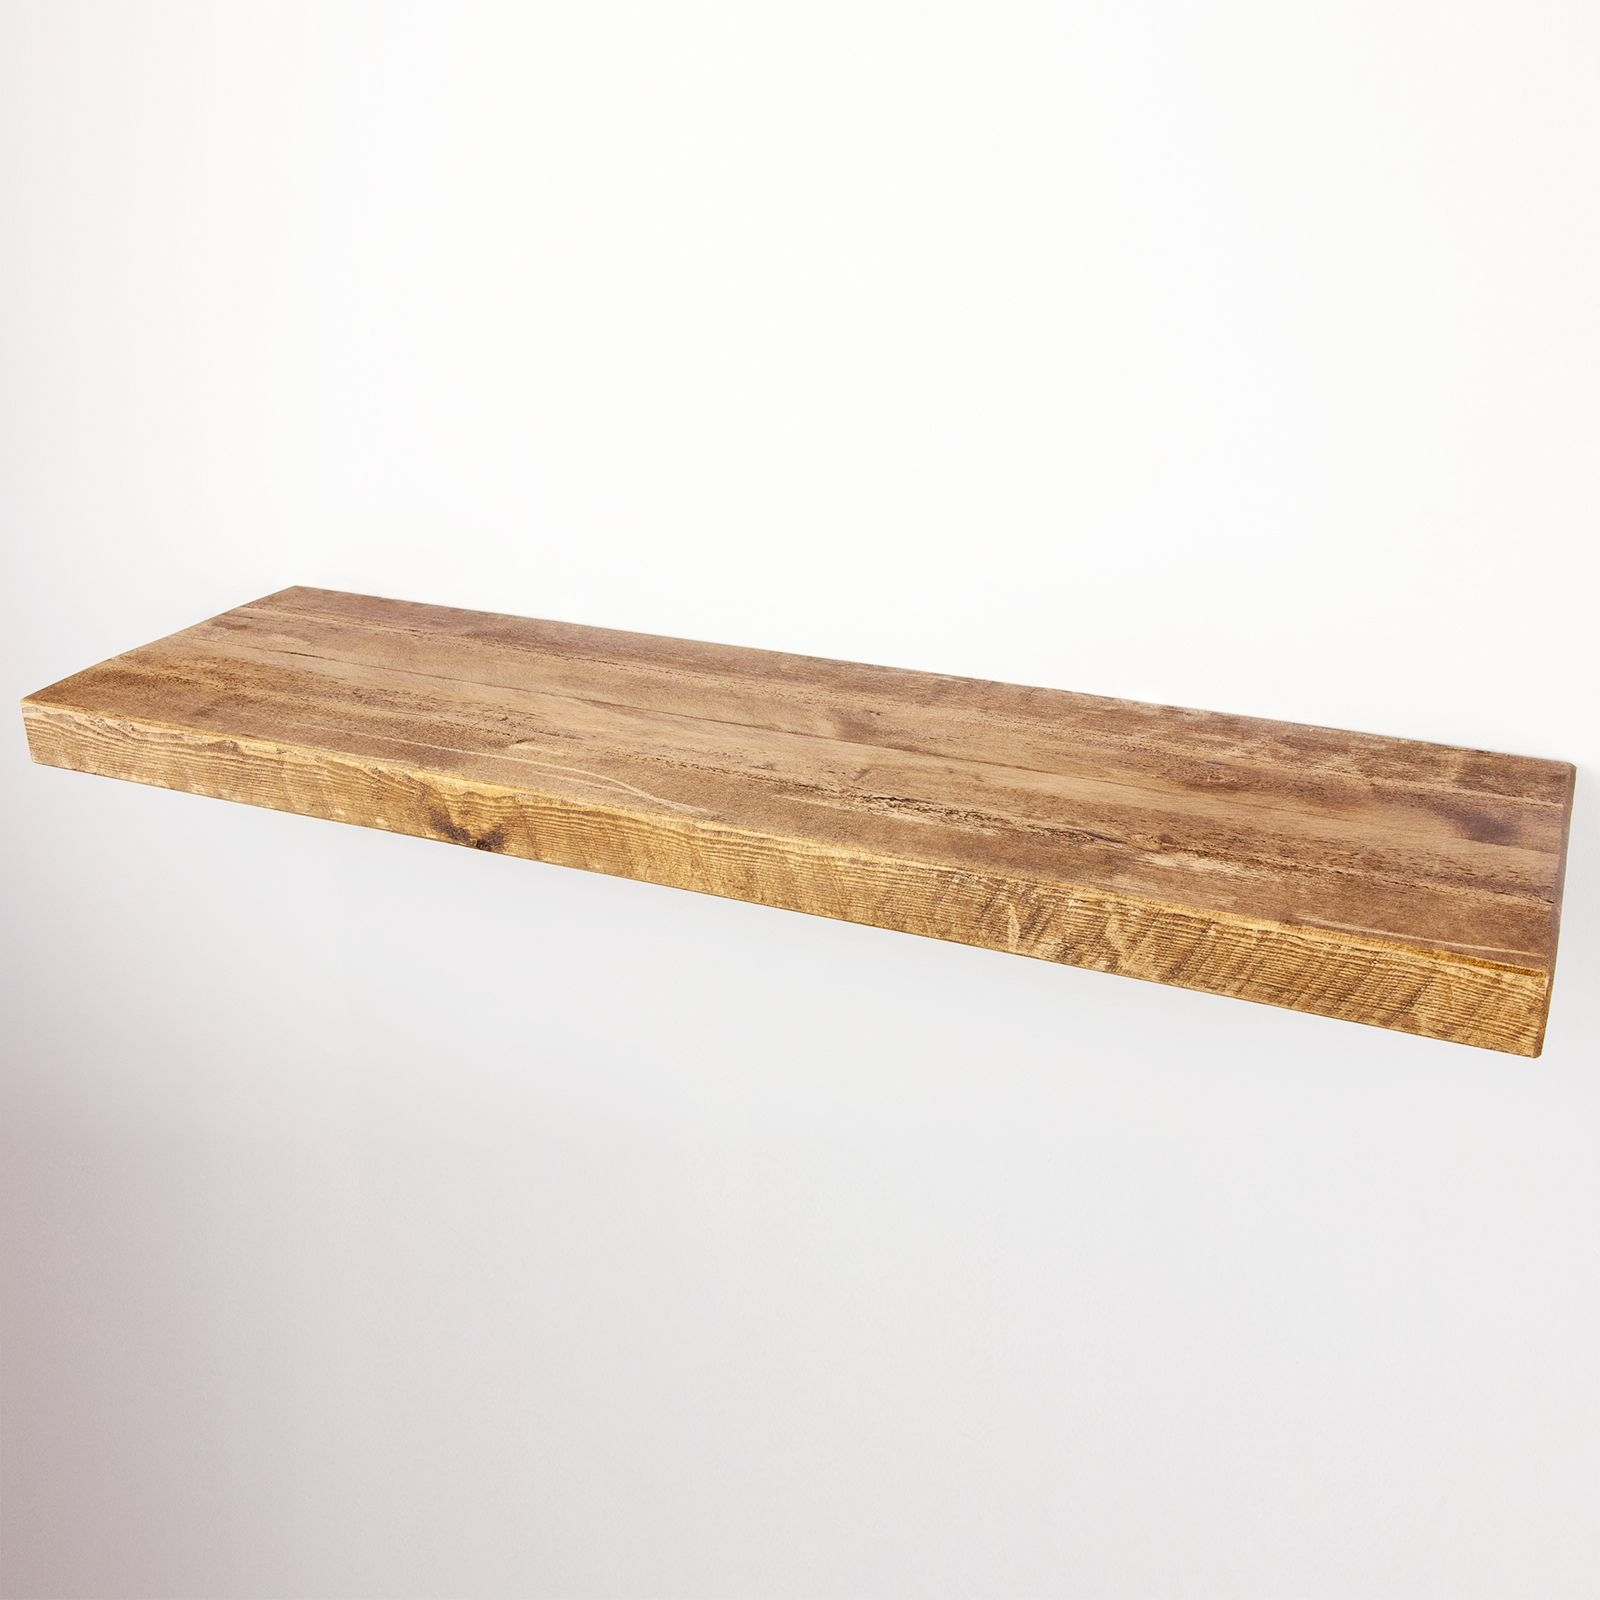 Floating Shelf 12×2 Solid Pine Funky Chunky Furniture Inside 50cm Floating Shelf (Image 4 of 15)